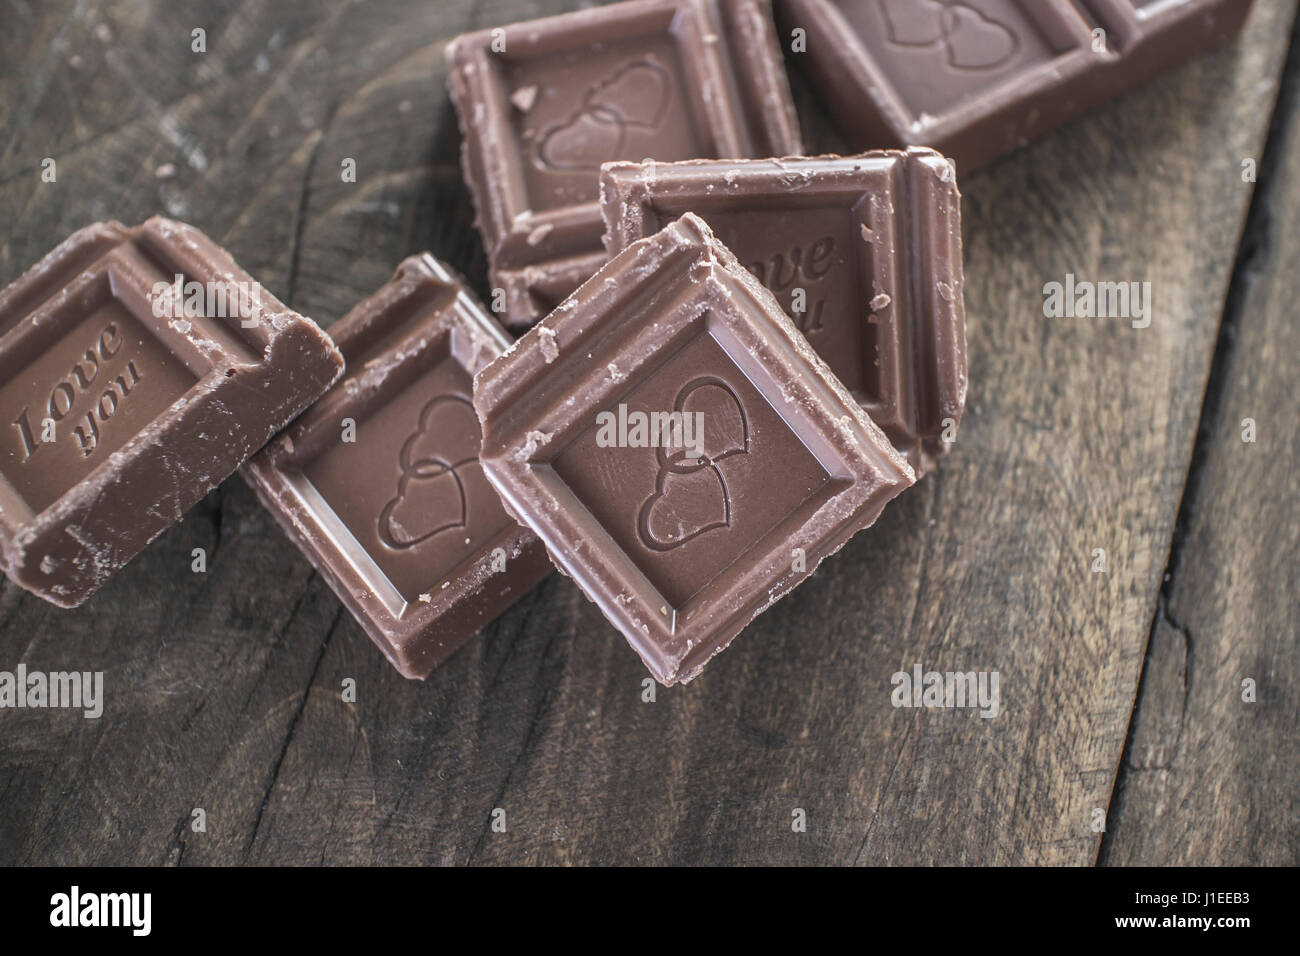 Pieces of  chocolate on wooden background, from above - Stock Image